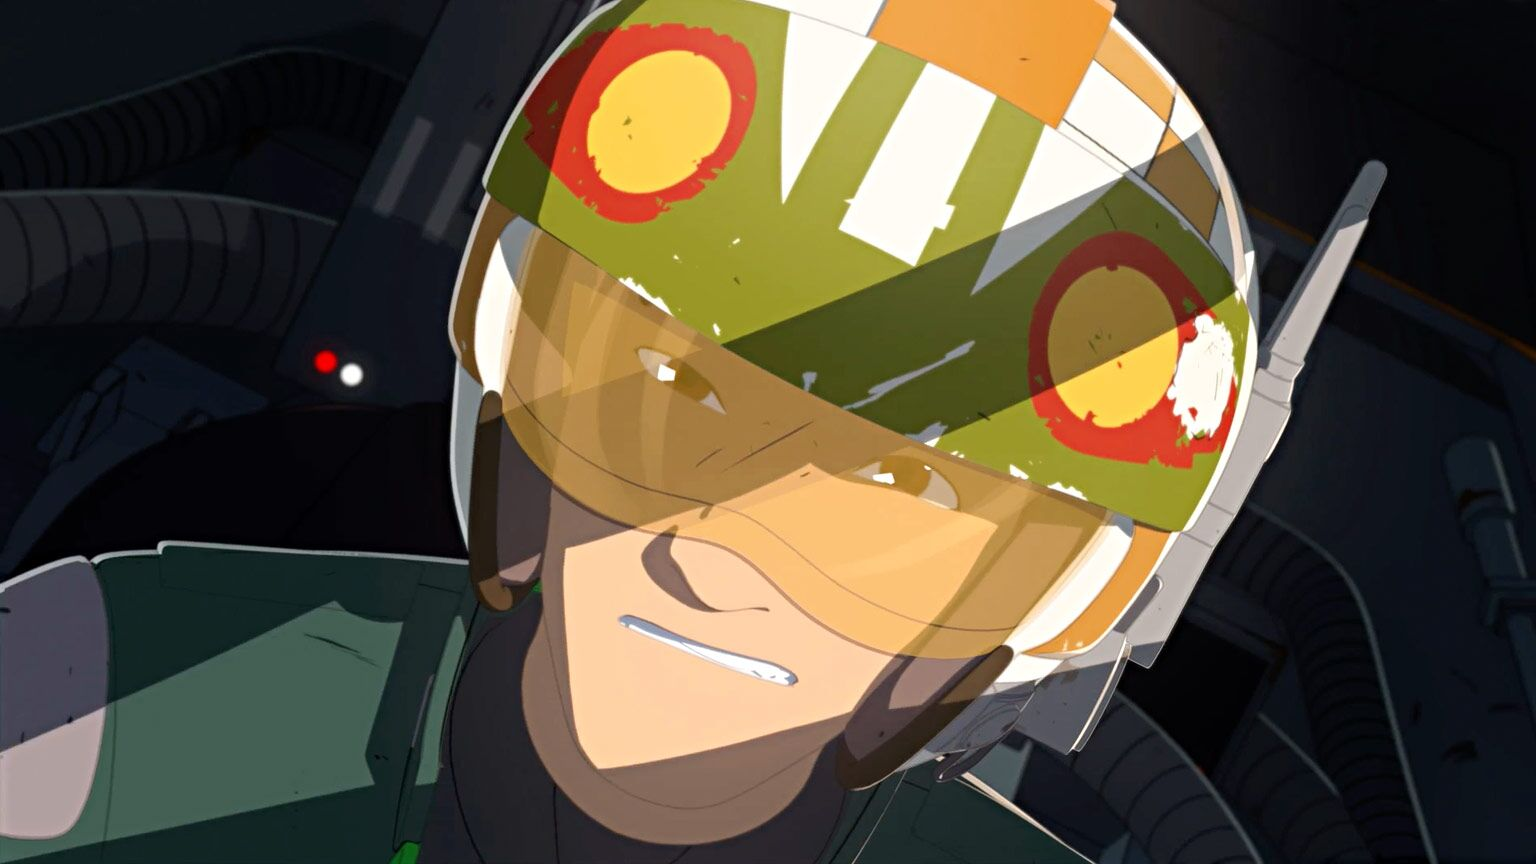 Star Wars: Resistance star Christopher Sean recalls experiencing Star Wars for the first time